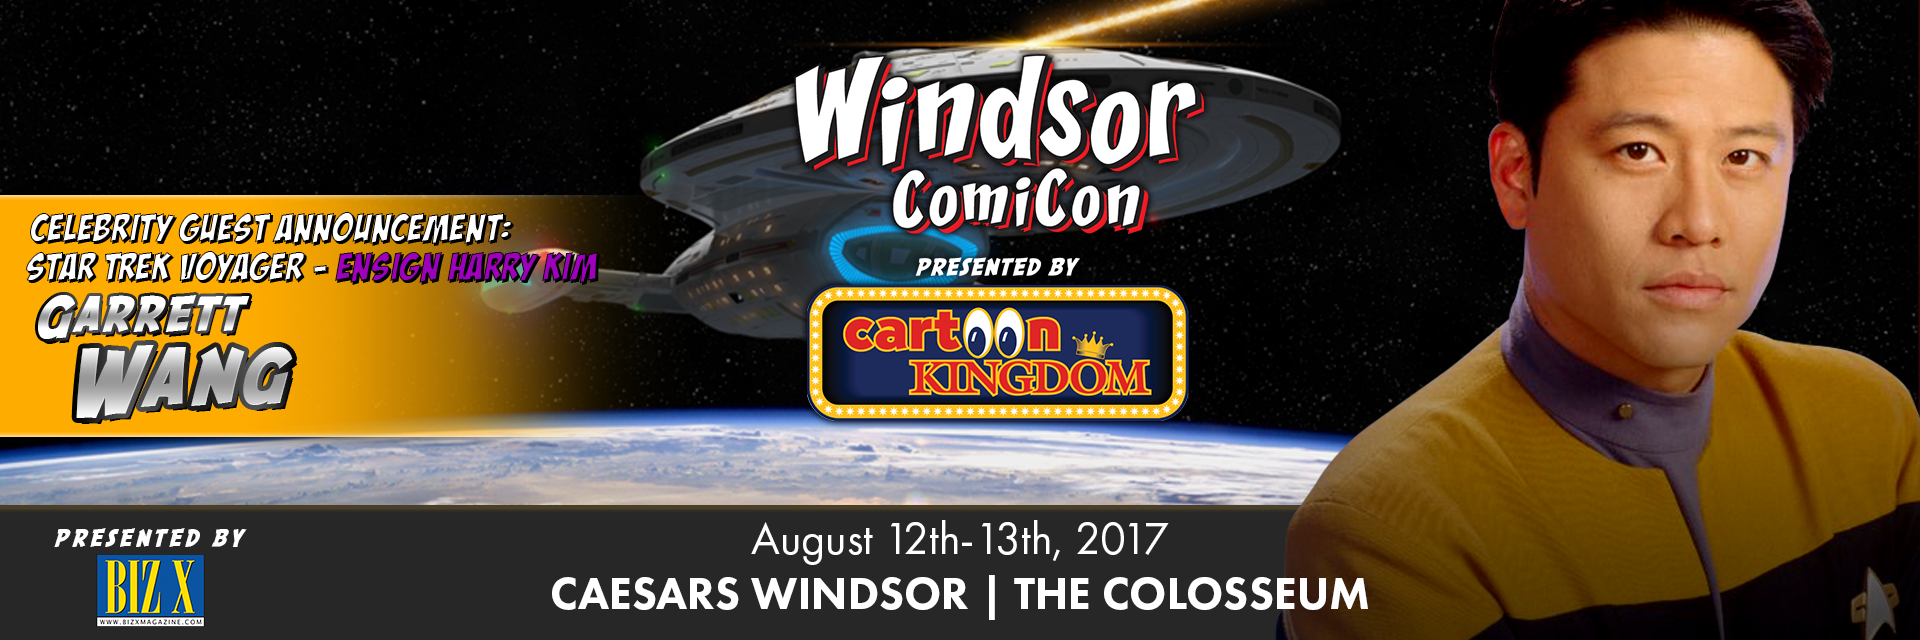 Garrett Wang from Star Trek Voyager to attend Windsor ComiCon 2017